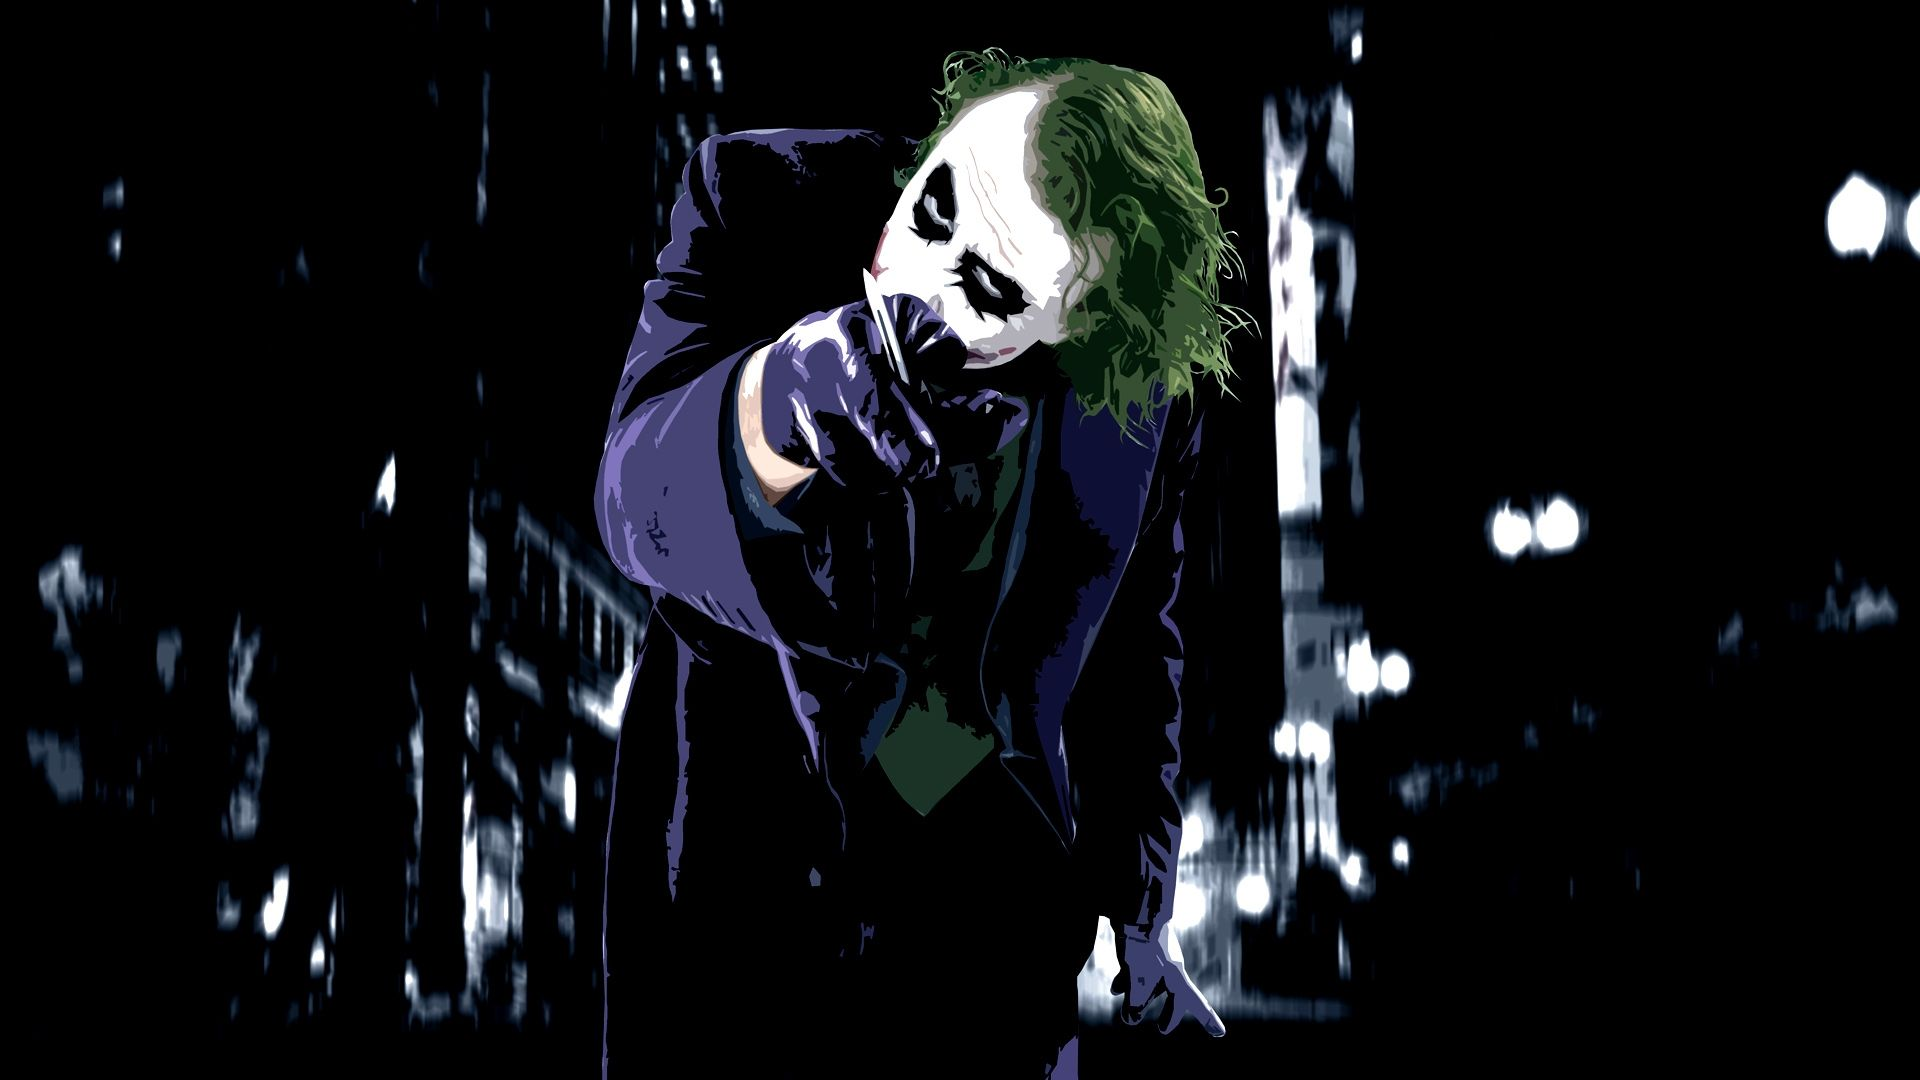 Joker Desktop Wallpapers Top Free Joker Desktop Backgrounds